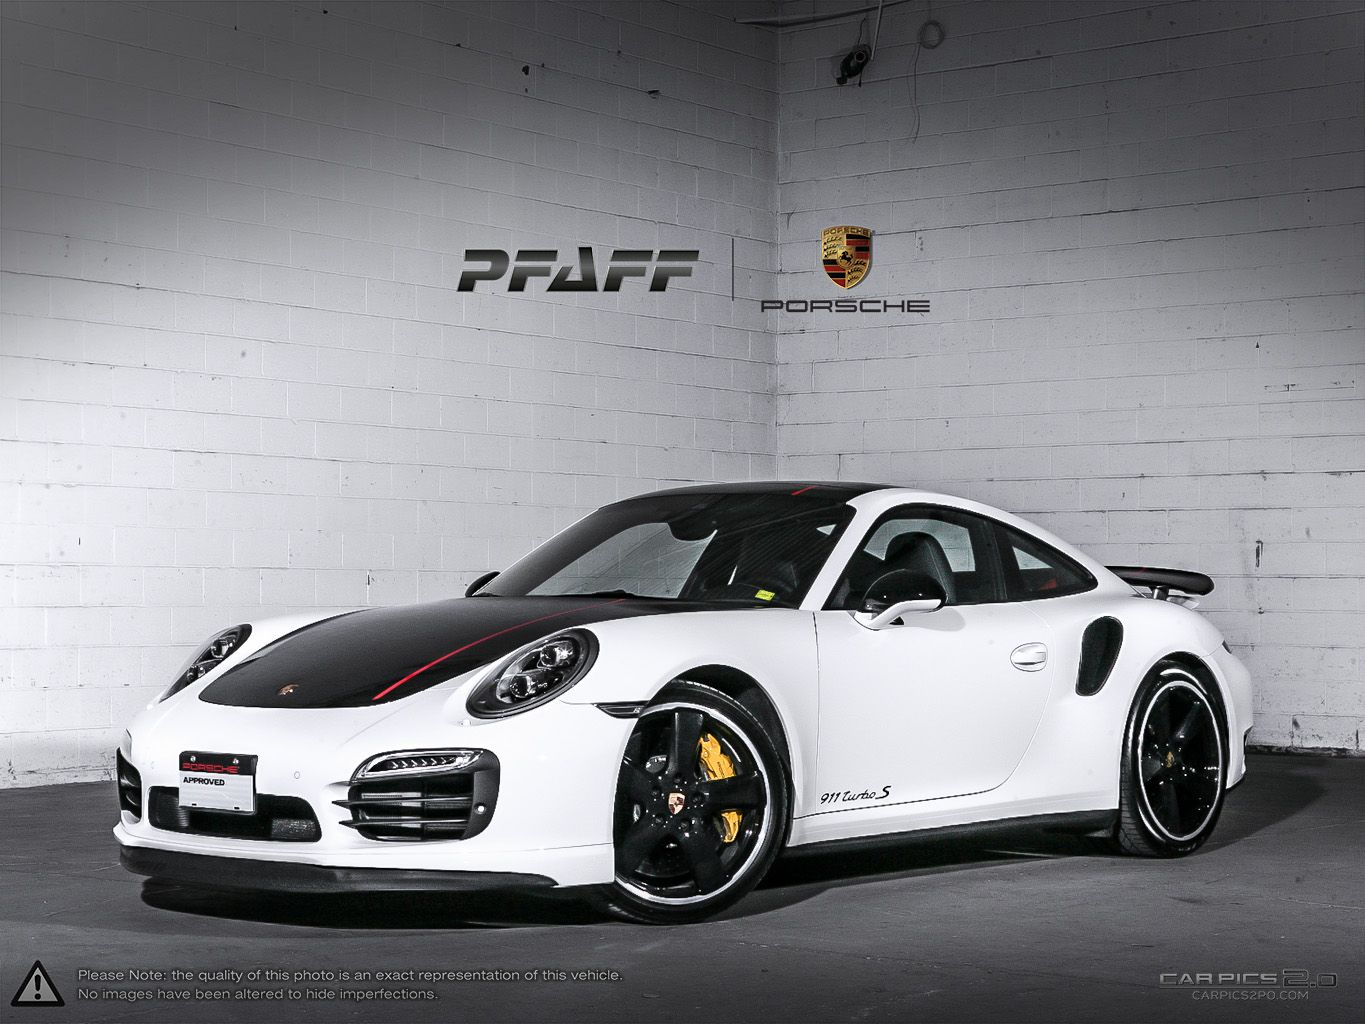 porsche 911 gt2 for sale canada 2011 porsche 911 gt2 rs for sale columbus ohio youtube porsche. Black Bedroom Furniture Sets. Home Design Ideas